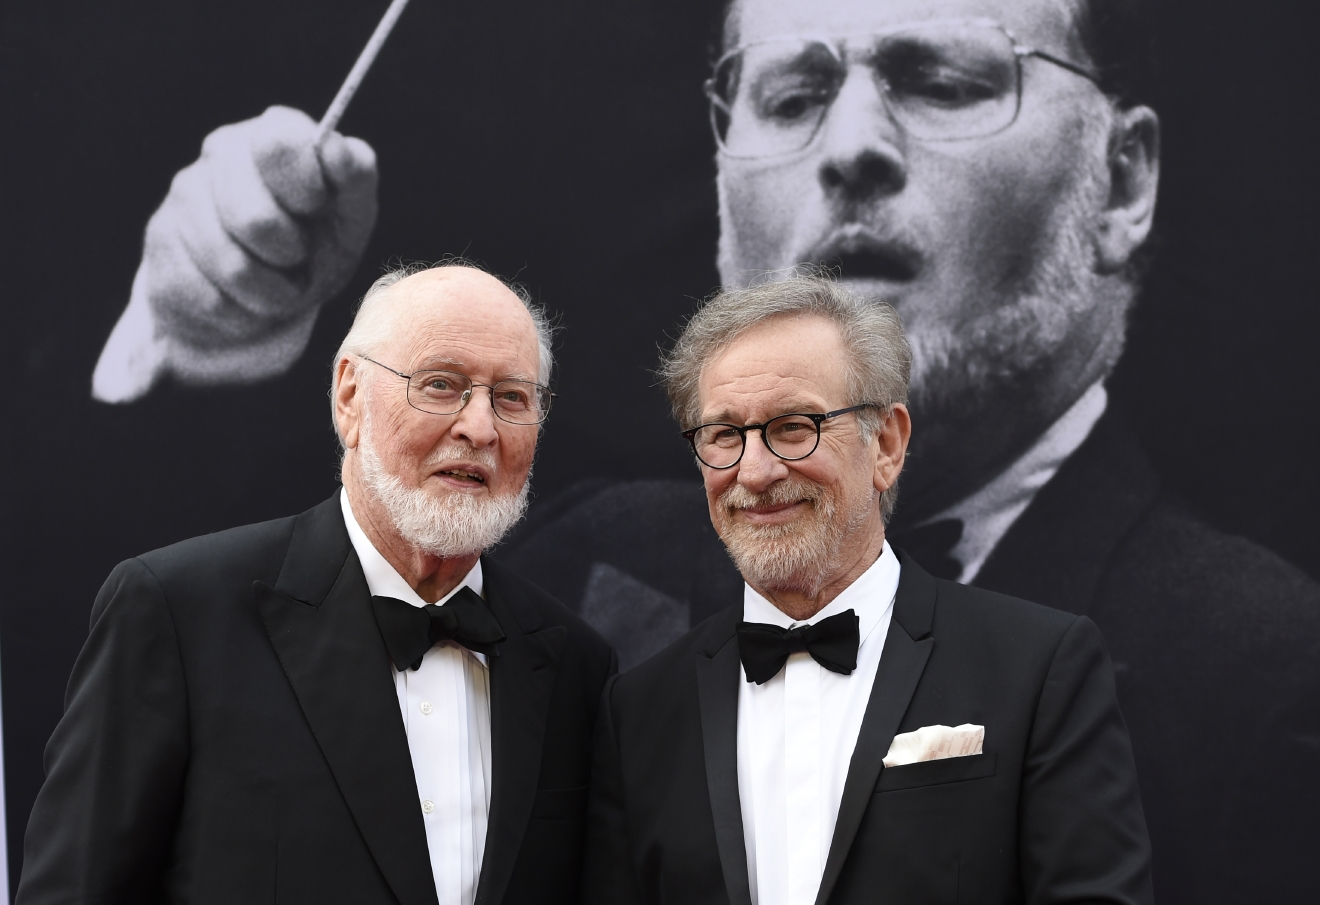 Composer John Williams, left, and director Steven Spielberg pose together at the 2016 AFI Life Achievement Award Gala Tribute to John Williams at the Dolby Theatre on Thursday, June 9, 2016, in Los Angeles. (Photo by Chris Pizzello/Invision/AP)